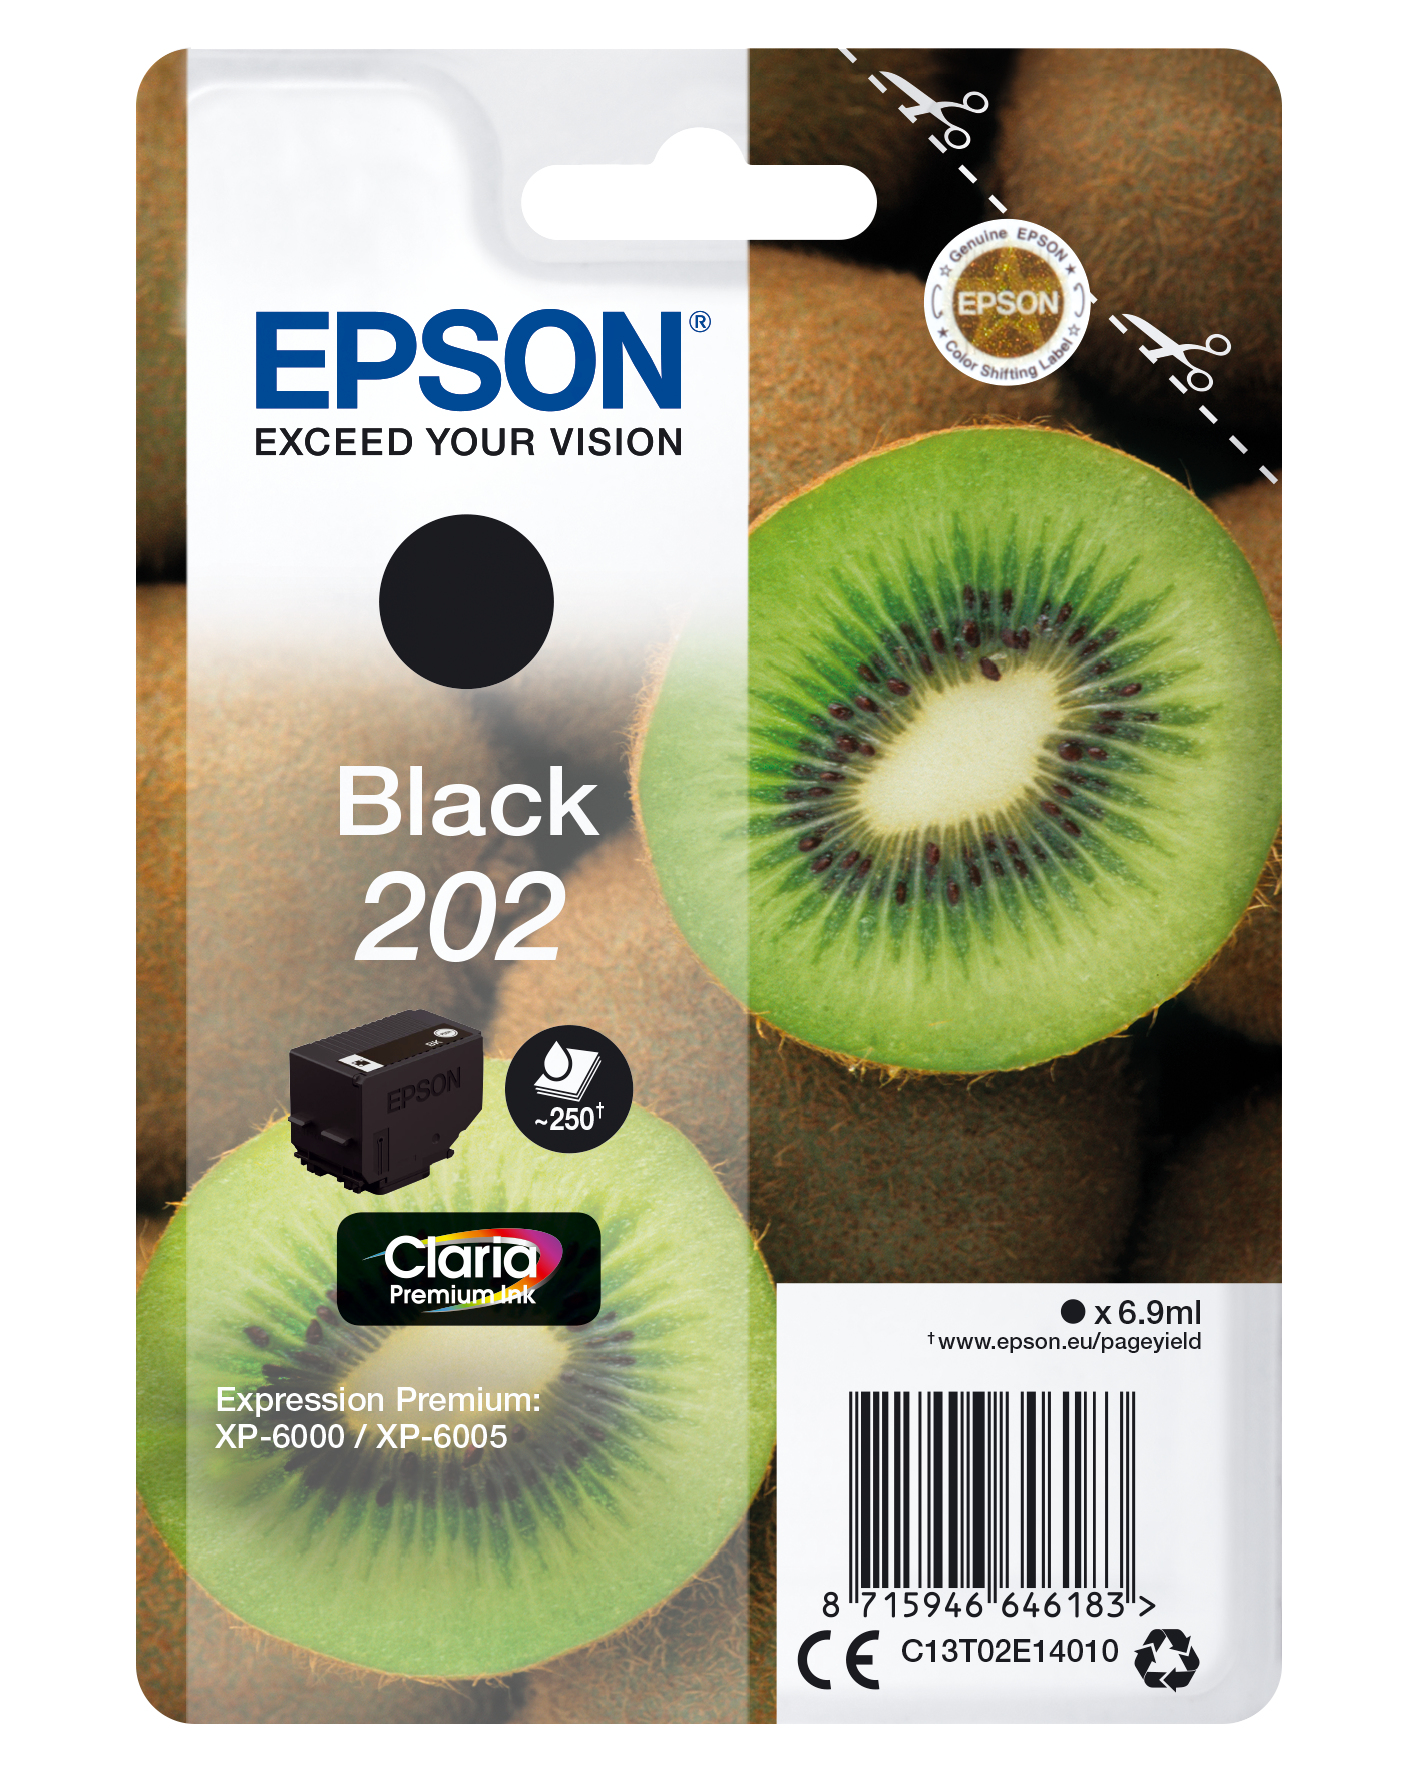 Epson 202 - 6.9 Ml - Black - Original - Blister - Ink Cartridge - For Expression Premium XP-6000, XP-6005, XP-6100, XP-6105 C13T02E14010 - C2000